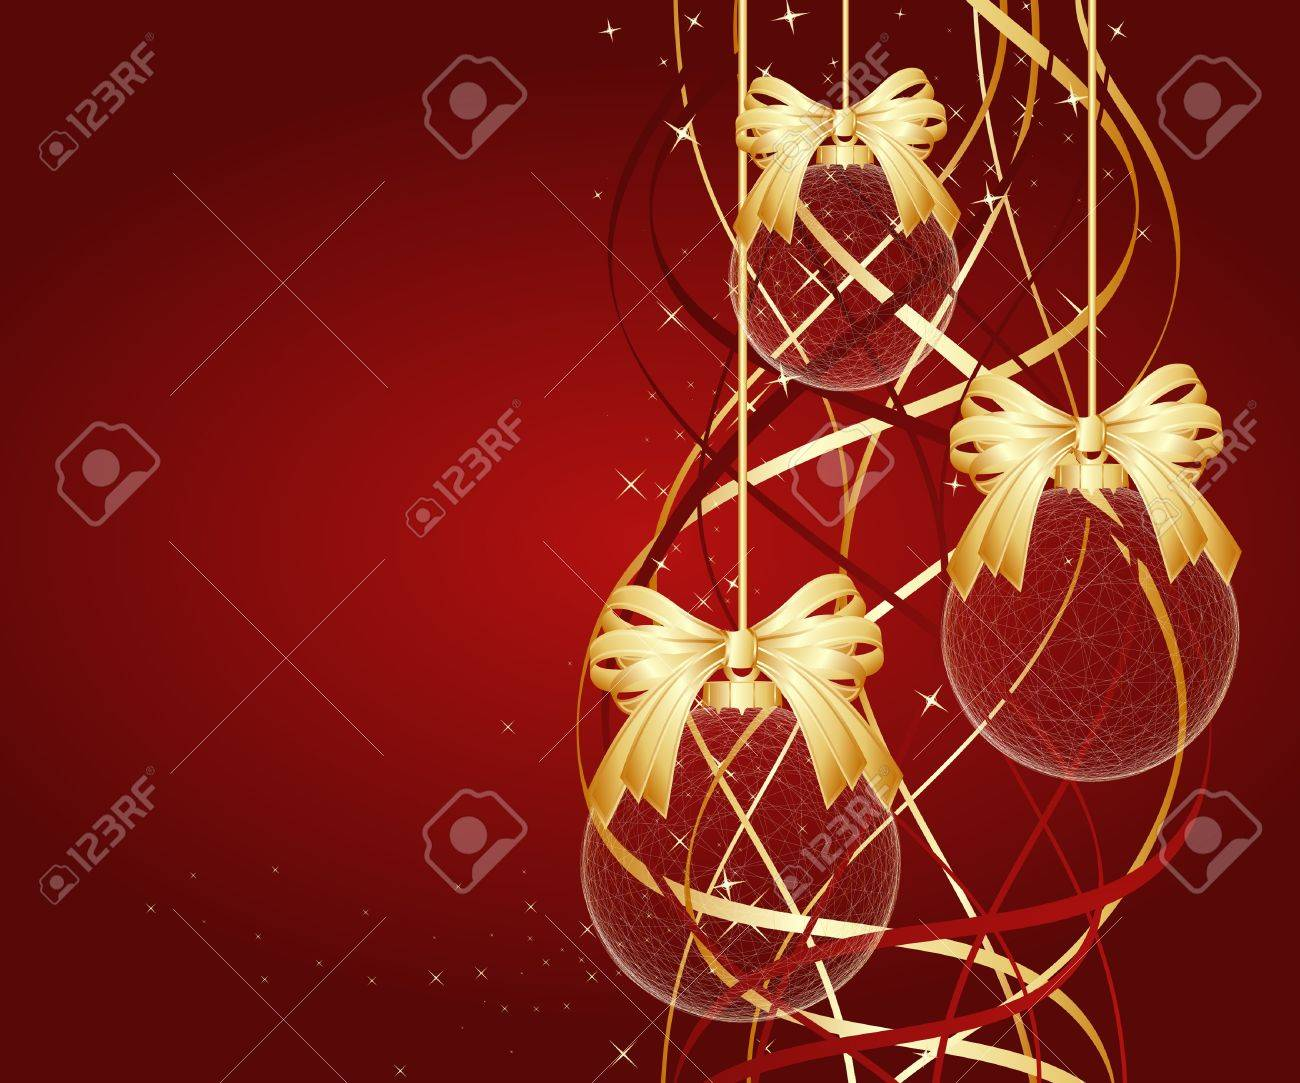 Background for new year and Christmas Stock Vector - 8297801